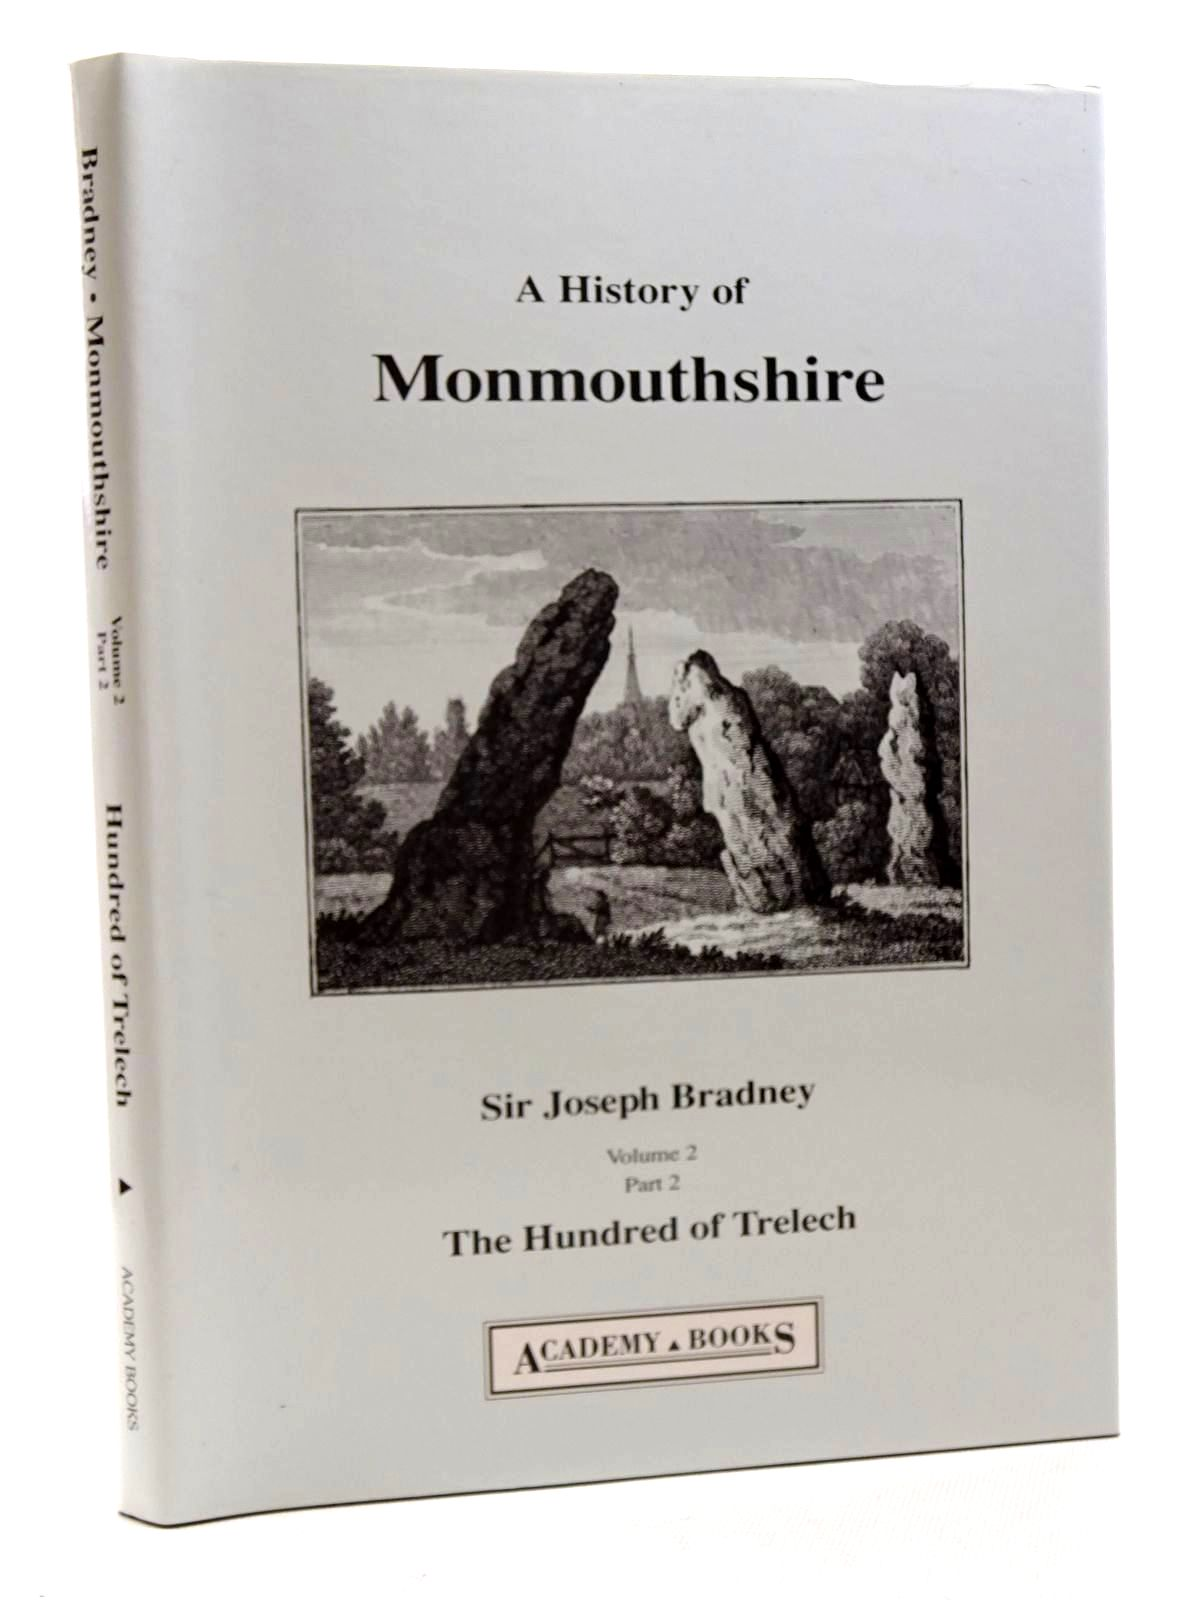 Photo of A HISTORY OF MONMOUTHSHIRE THE HUNDRED OF TRELECH written by Bradney, Joseph published by Academy Books (STOCK CODE: 1610696)  for sale by Stella & Rose's Books